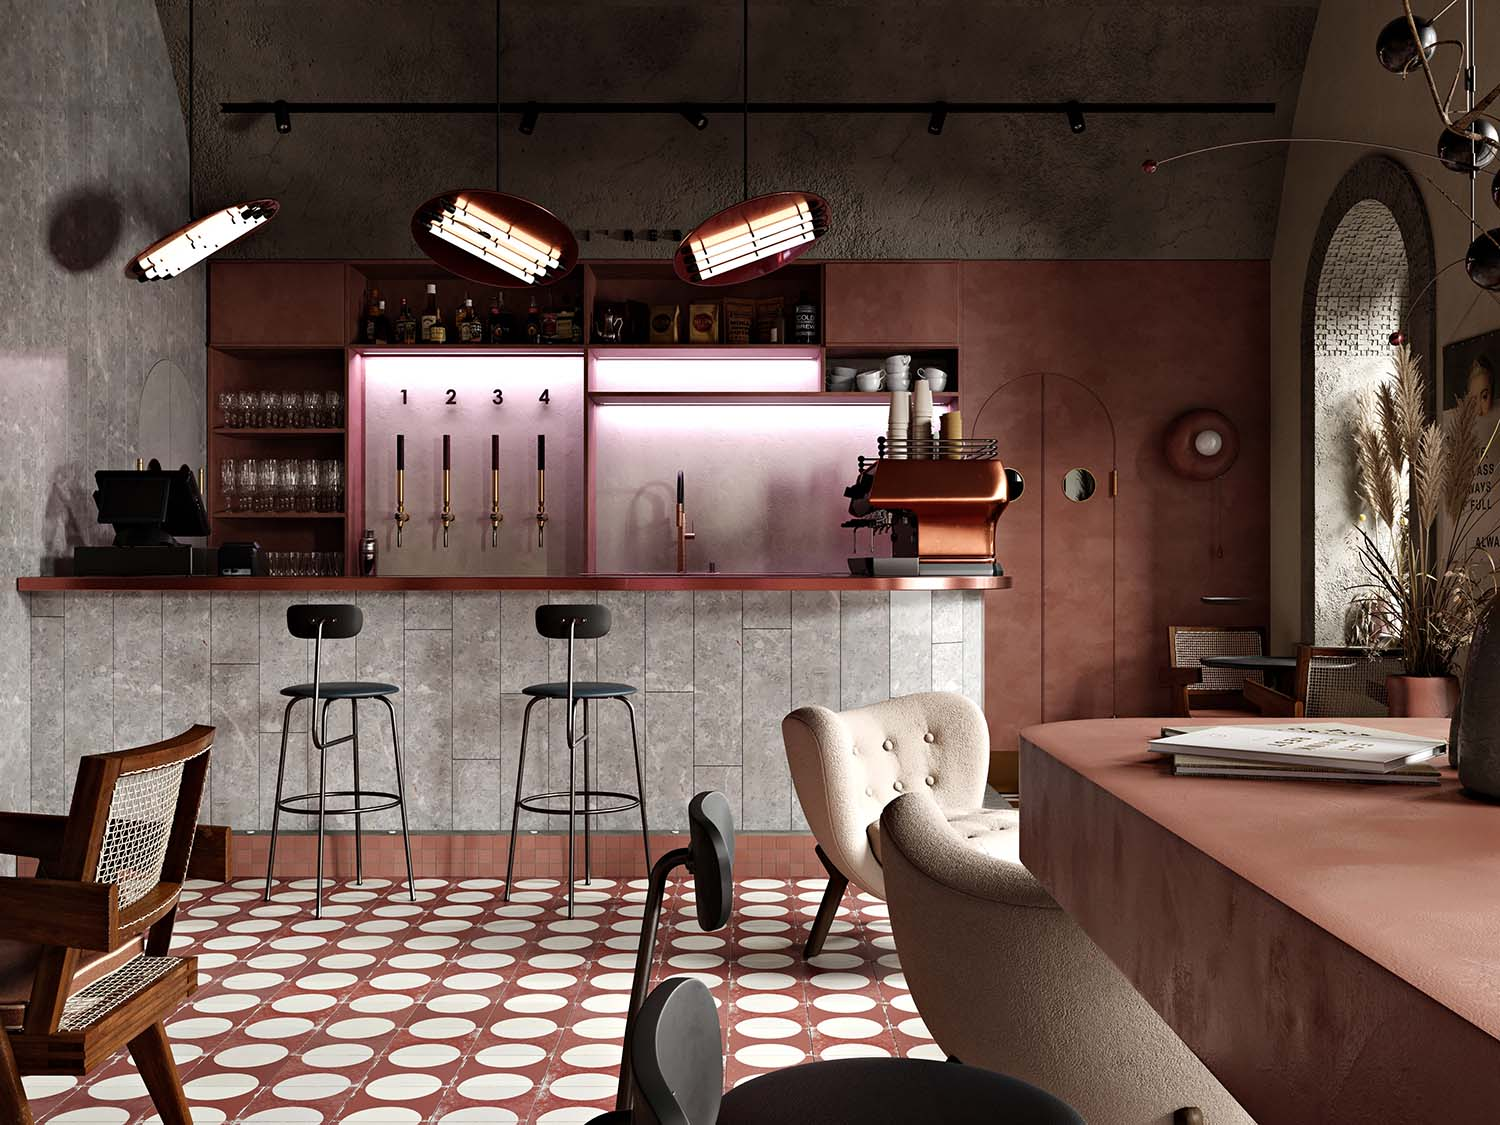 Buhairest Budapest Bar Designed by Roman Plyus Art Consultant Angelica Chernenko